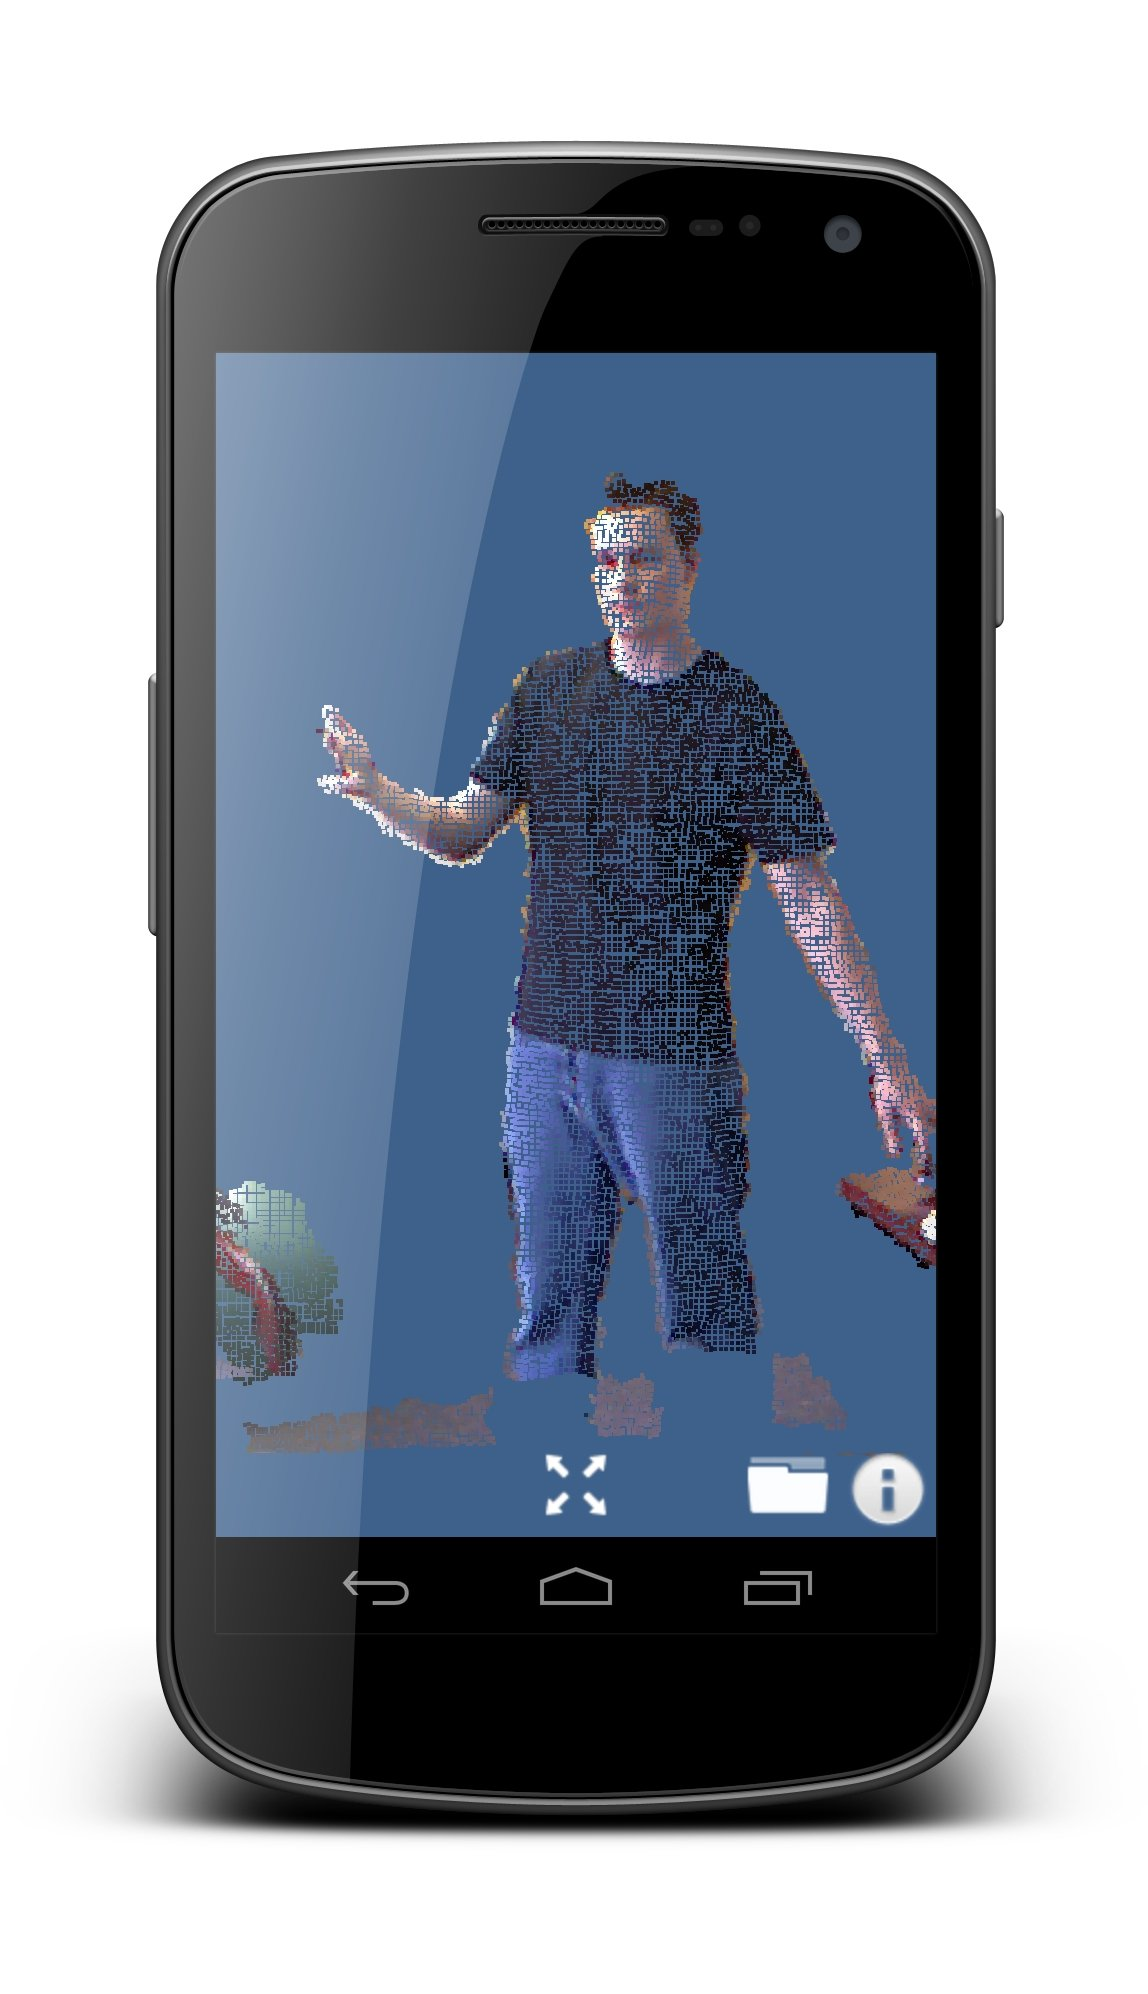 Point Cloud Streaming to Mobile Devices with Real-time Visualization